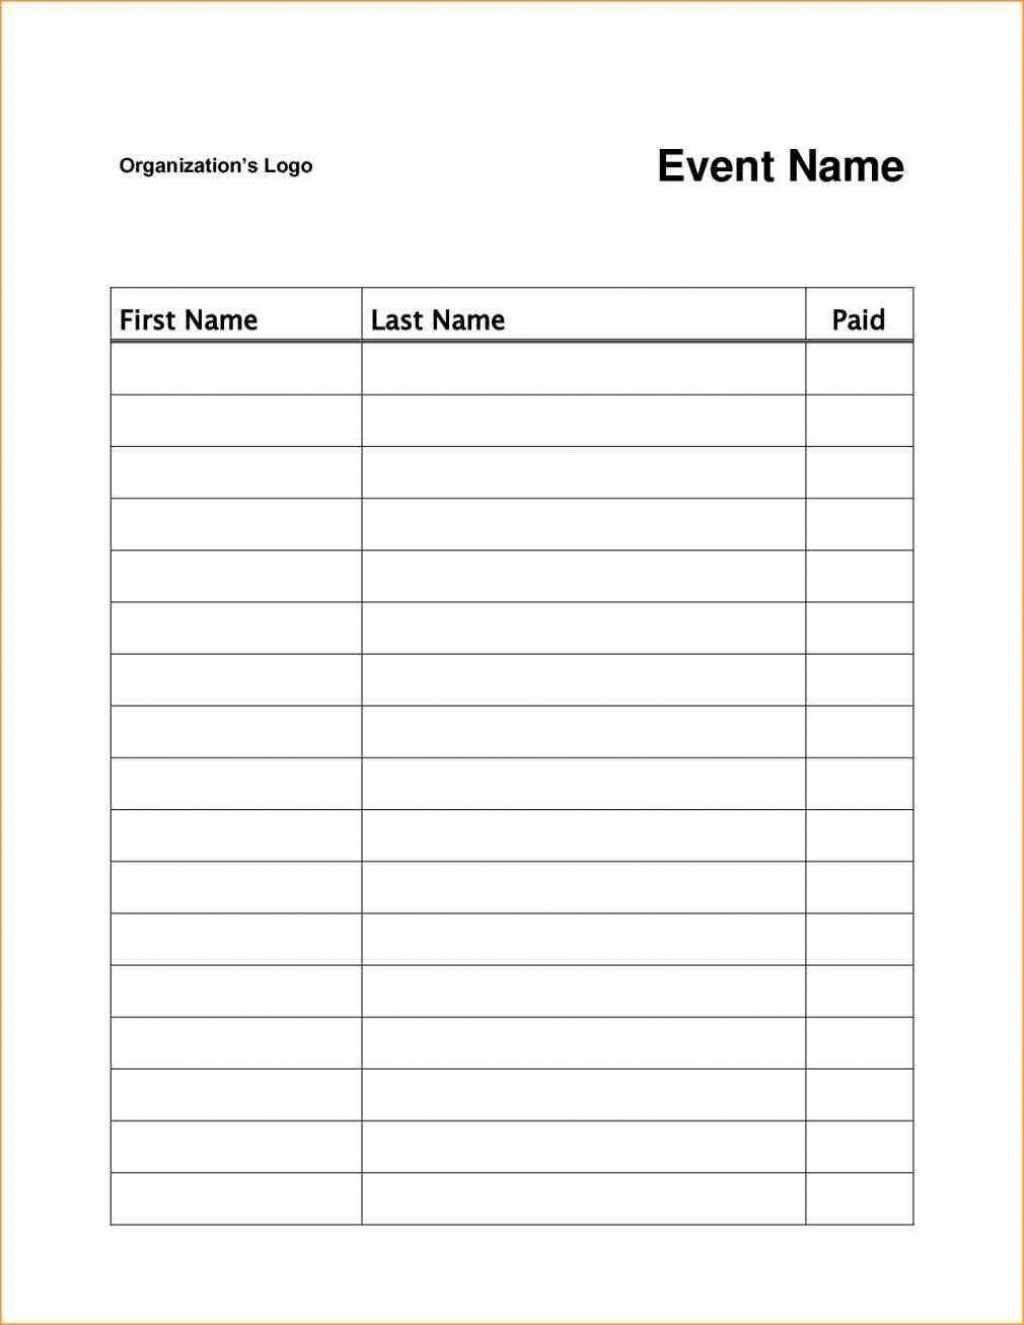 006 Breathtaking Free Signup Sheet Template Concept  Sign Up For Potluck Google Doc Volunteer InLarge